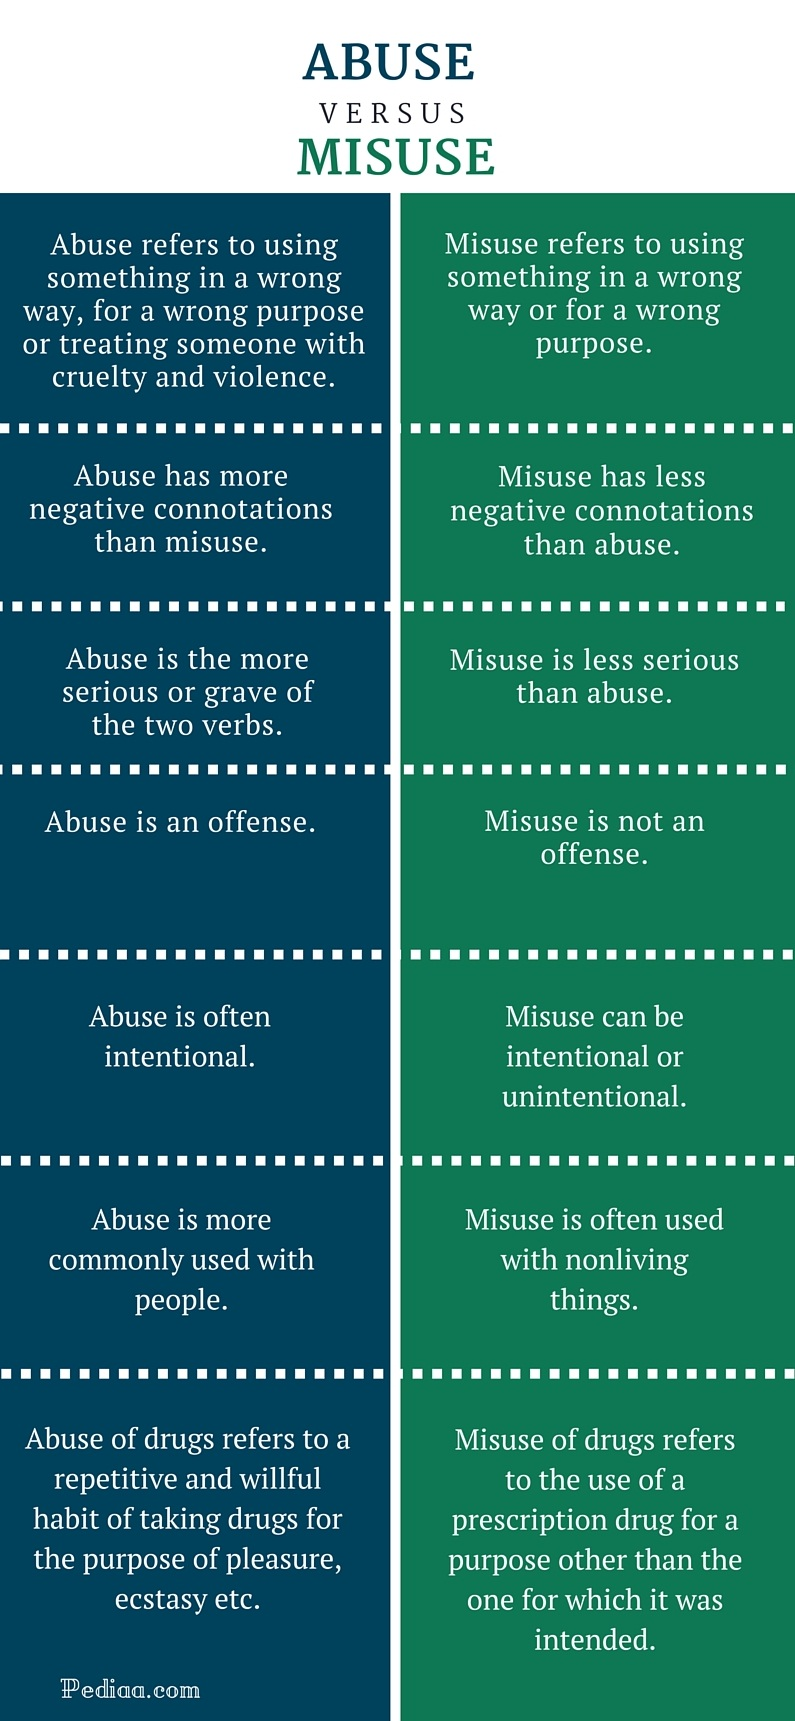 Difference Between Abuse and Misuse